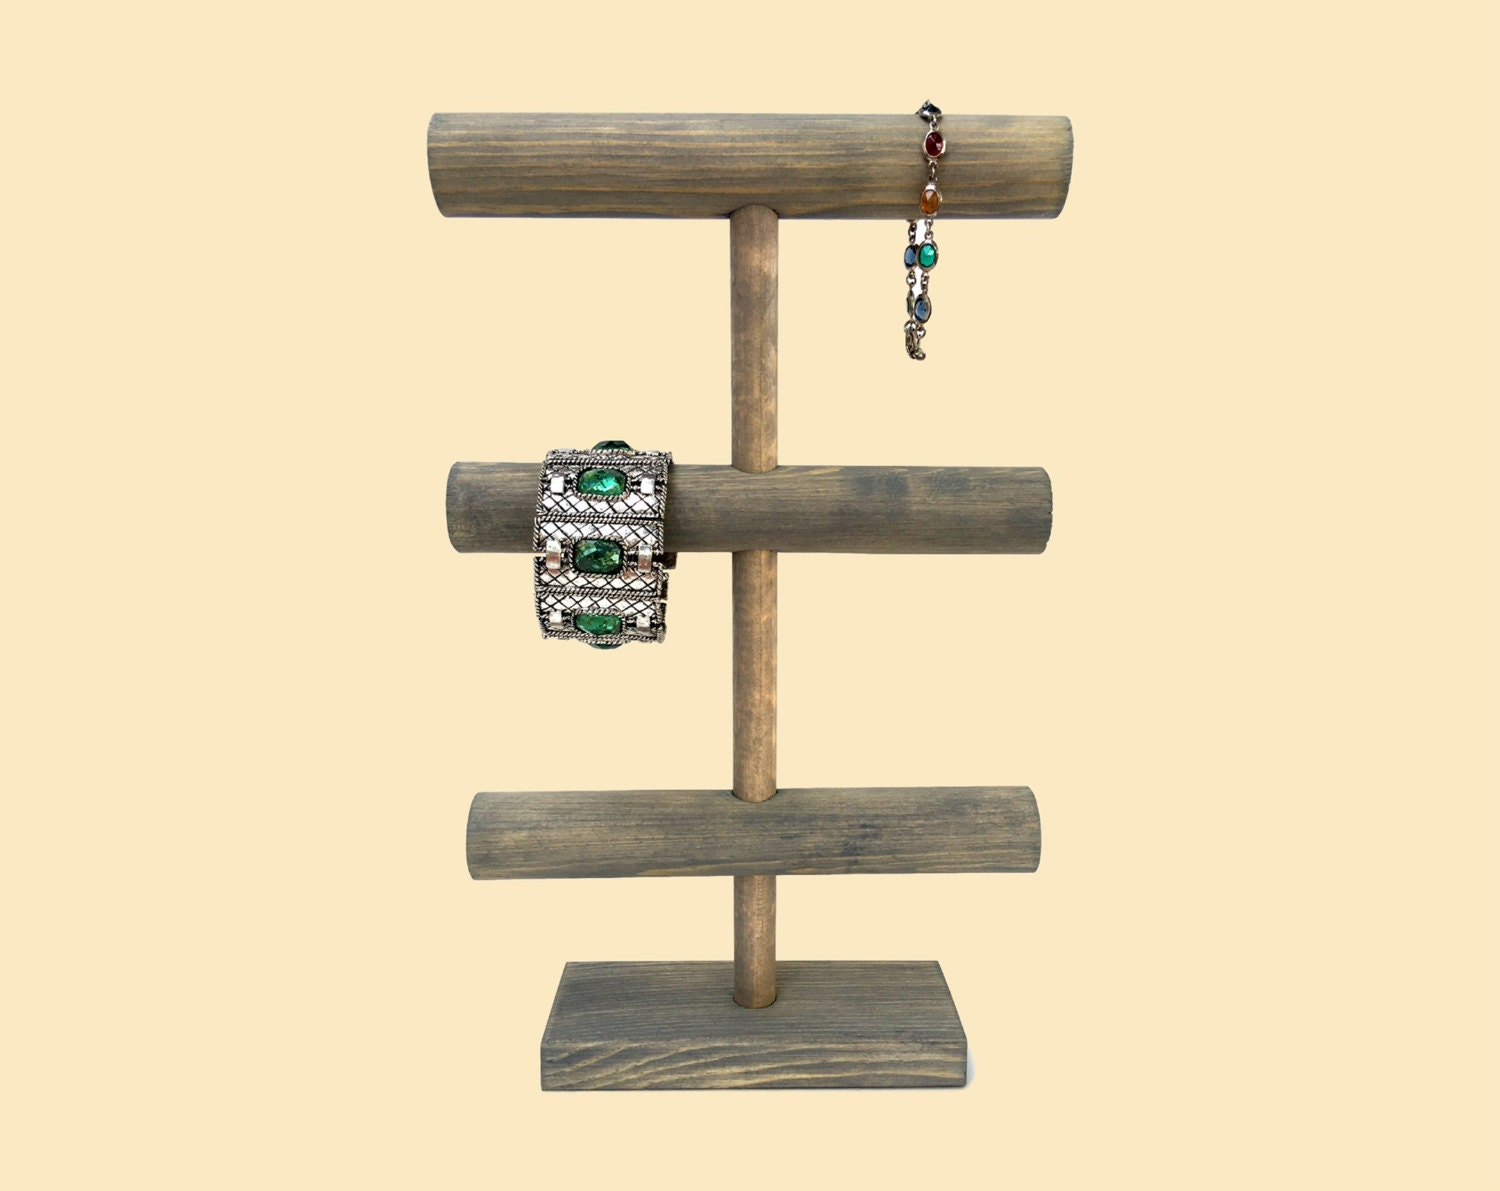 Exhibition Stand Organisers : Bracelet stand organizer watch display vertical jewelry